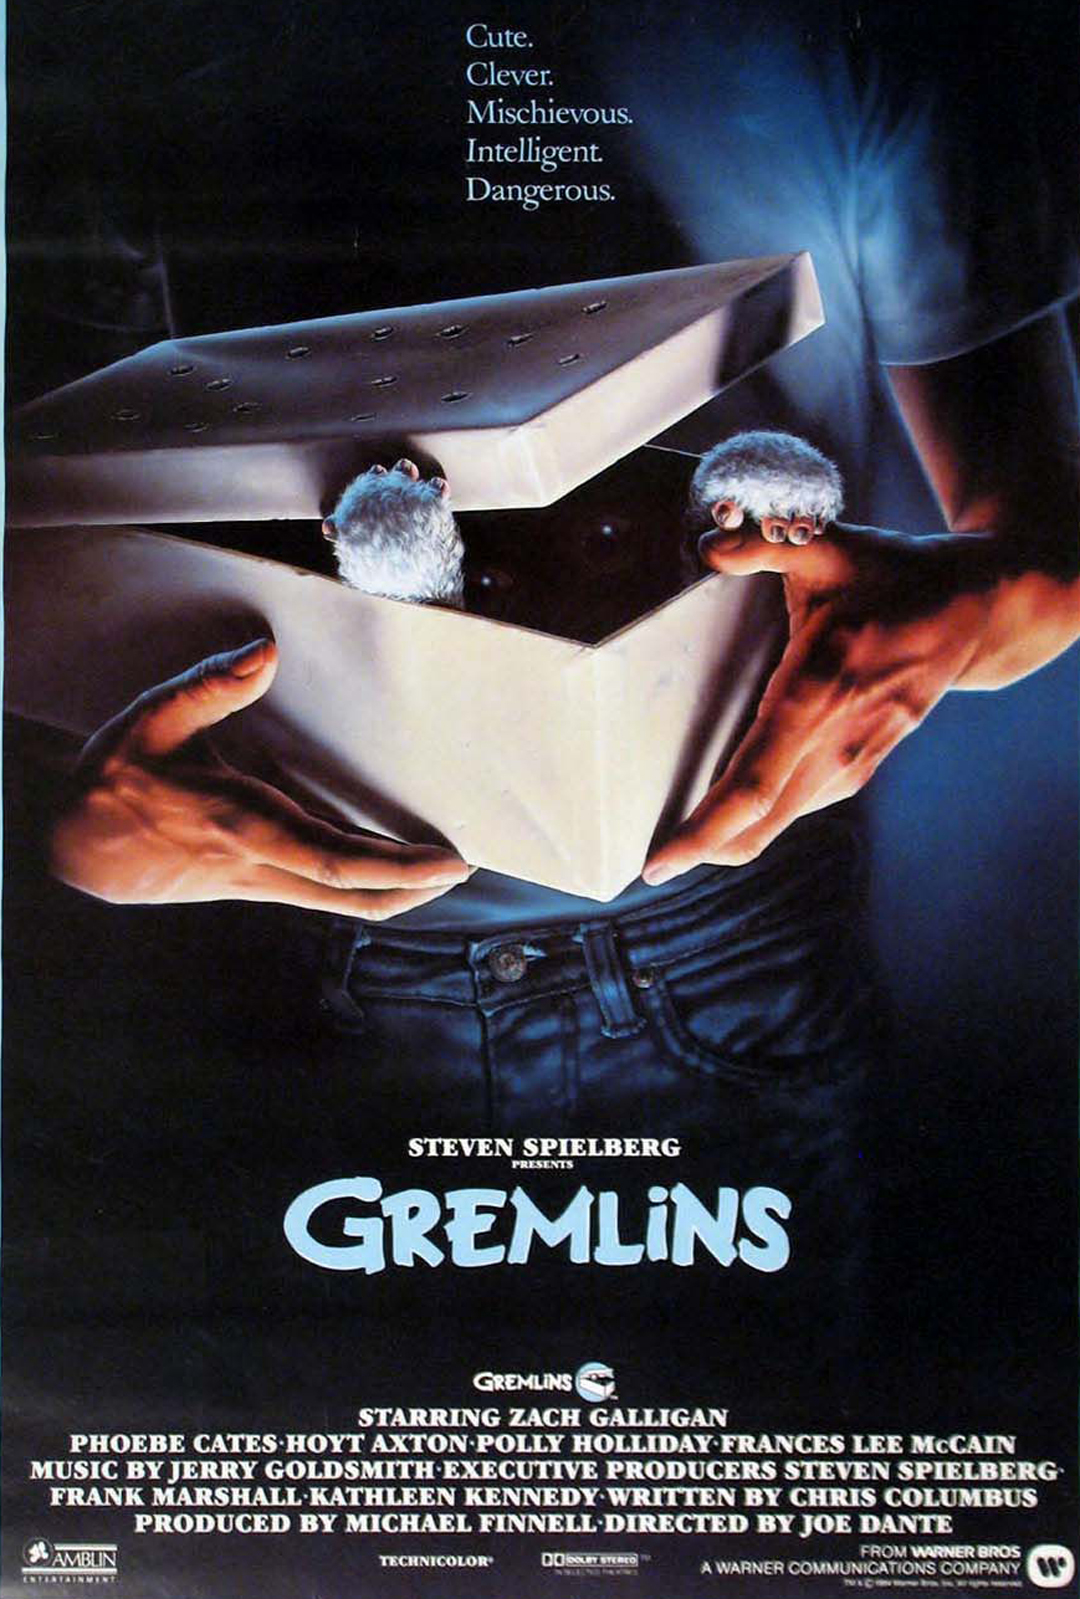 the 1984 holiday horror-comedy Gremlins envisioned a wholesome, small-town America besieged by nefarious outside forces.